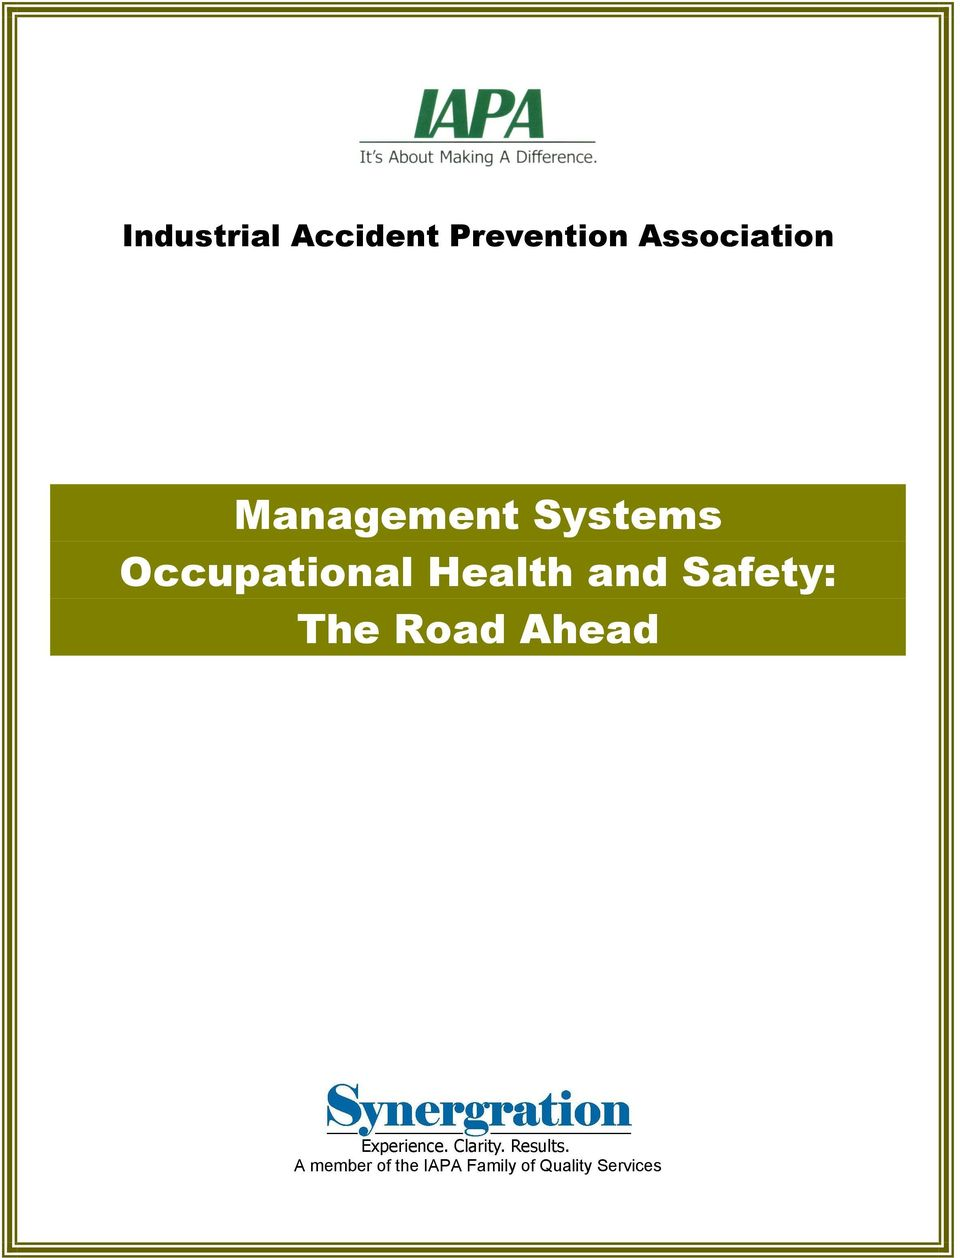 Occupational Health and Safety: The